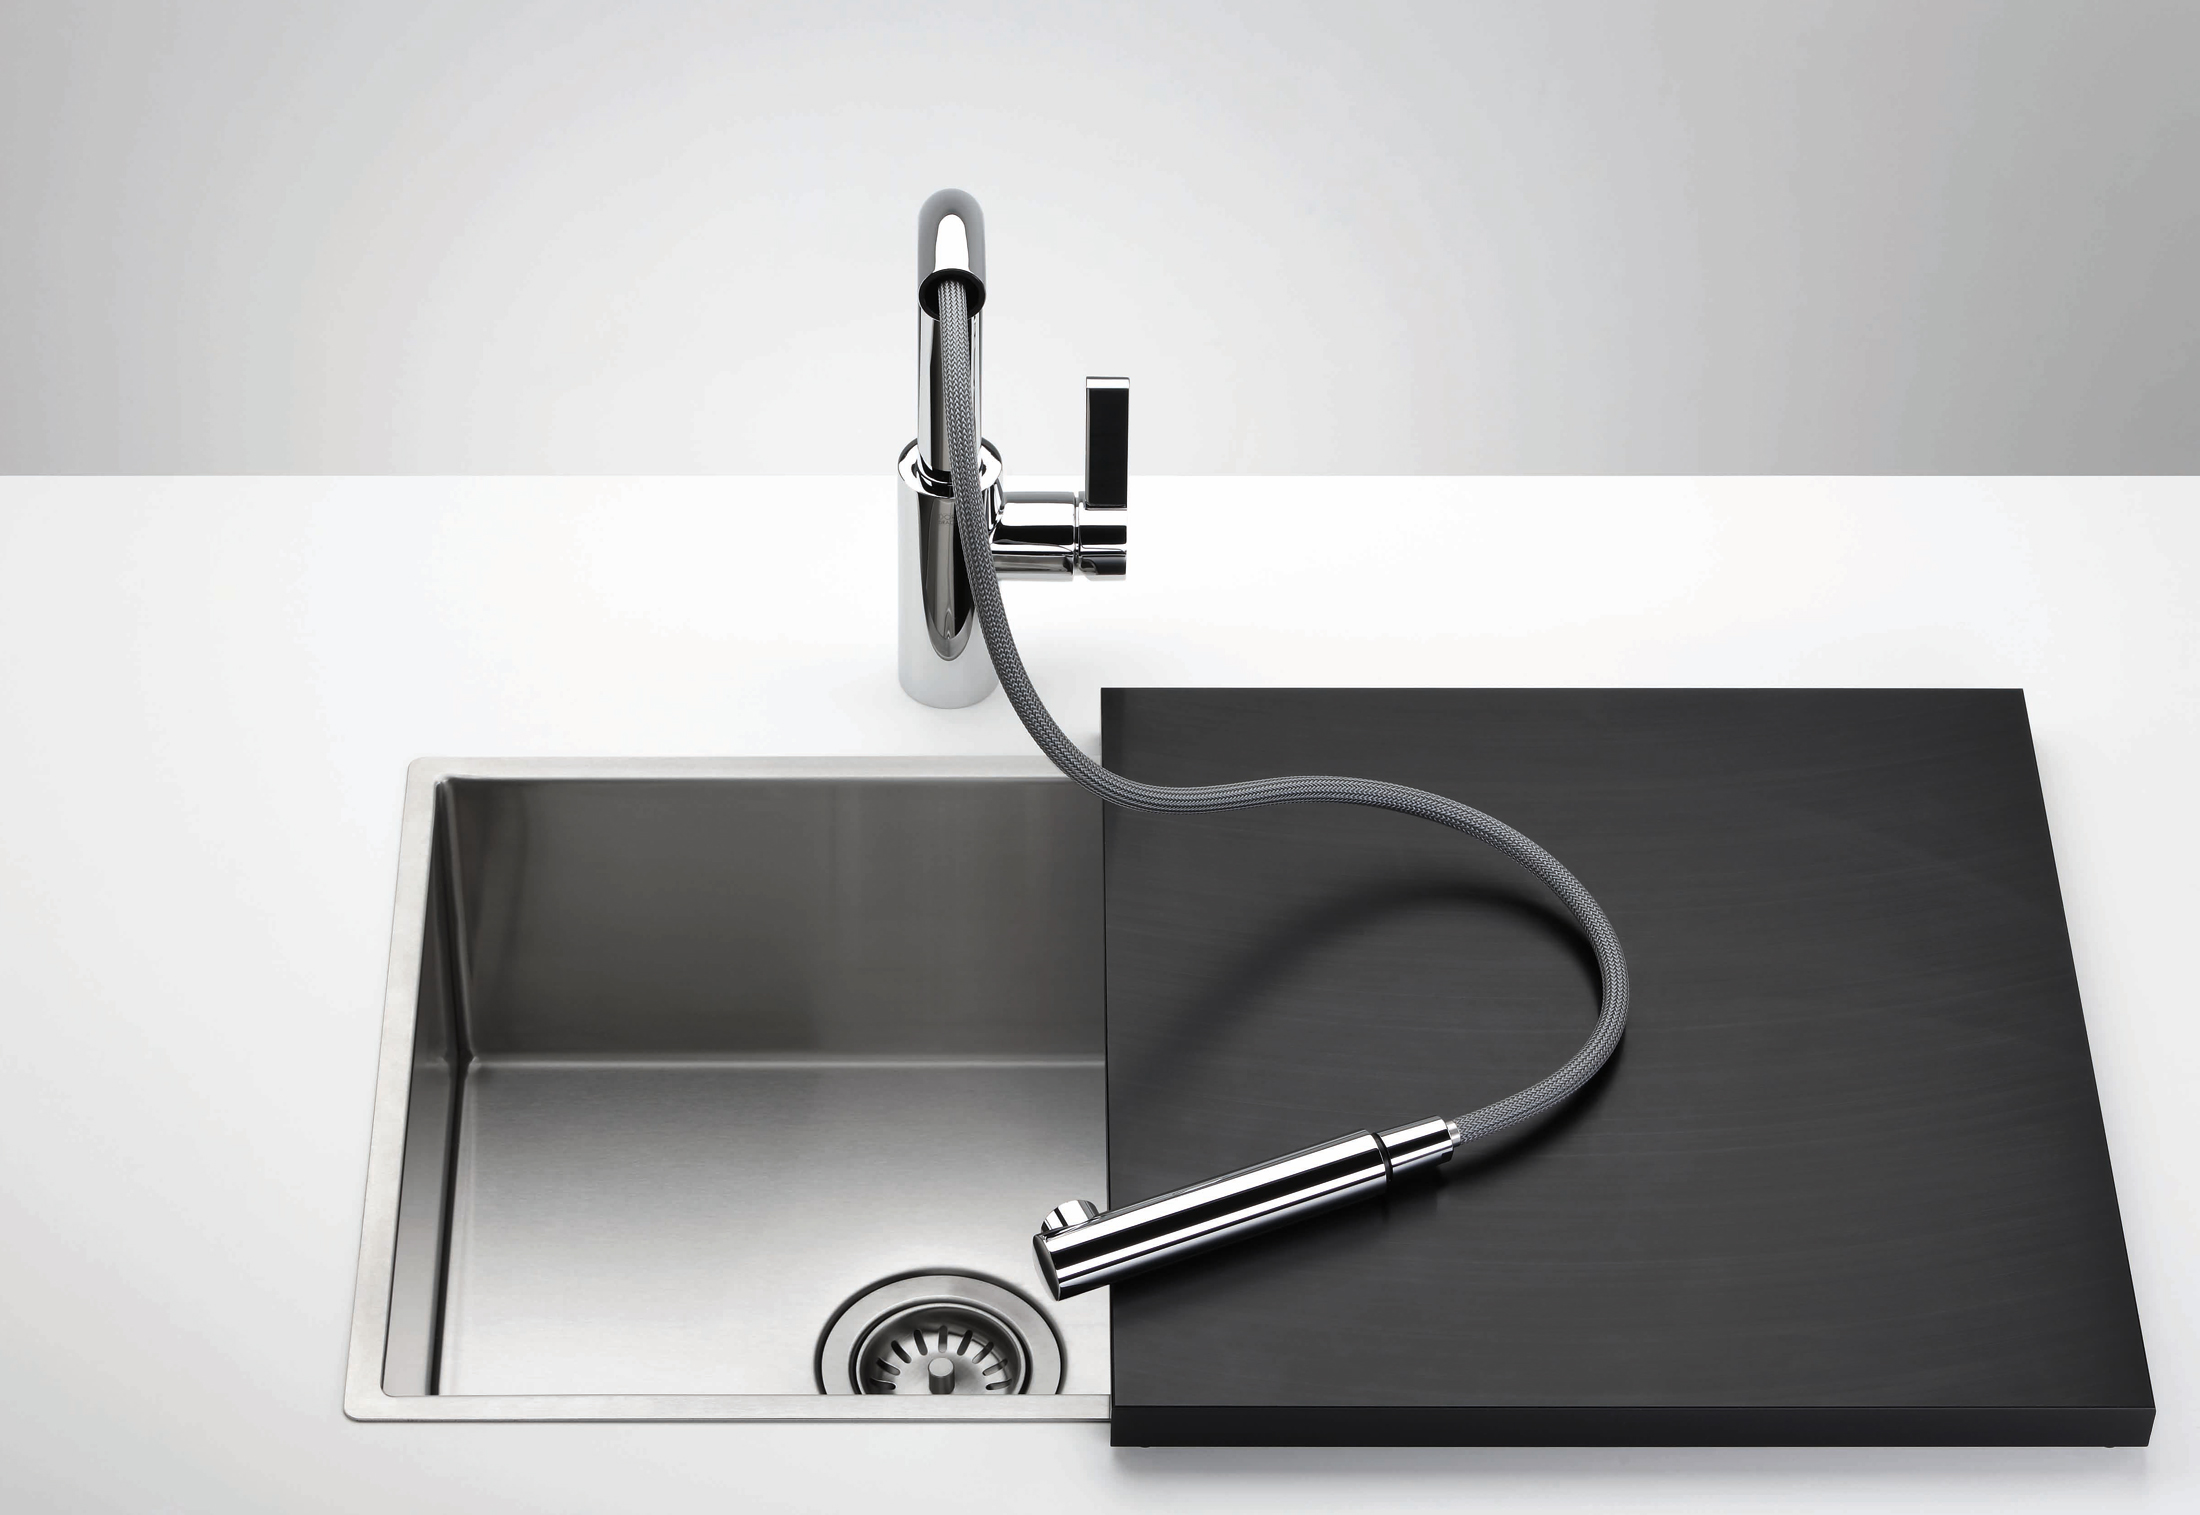 Surprising Elio Single Lever Mixer With Retractable Tip By Dornbracht Home Interior And Landscaping Ponolsignezvosmurscom